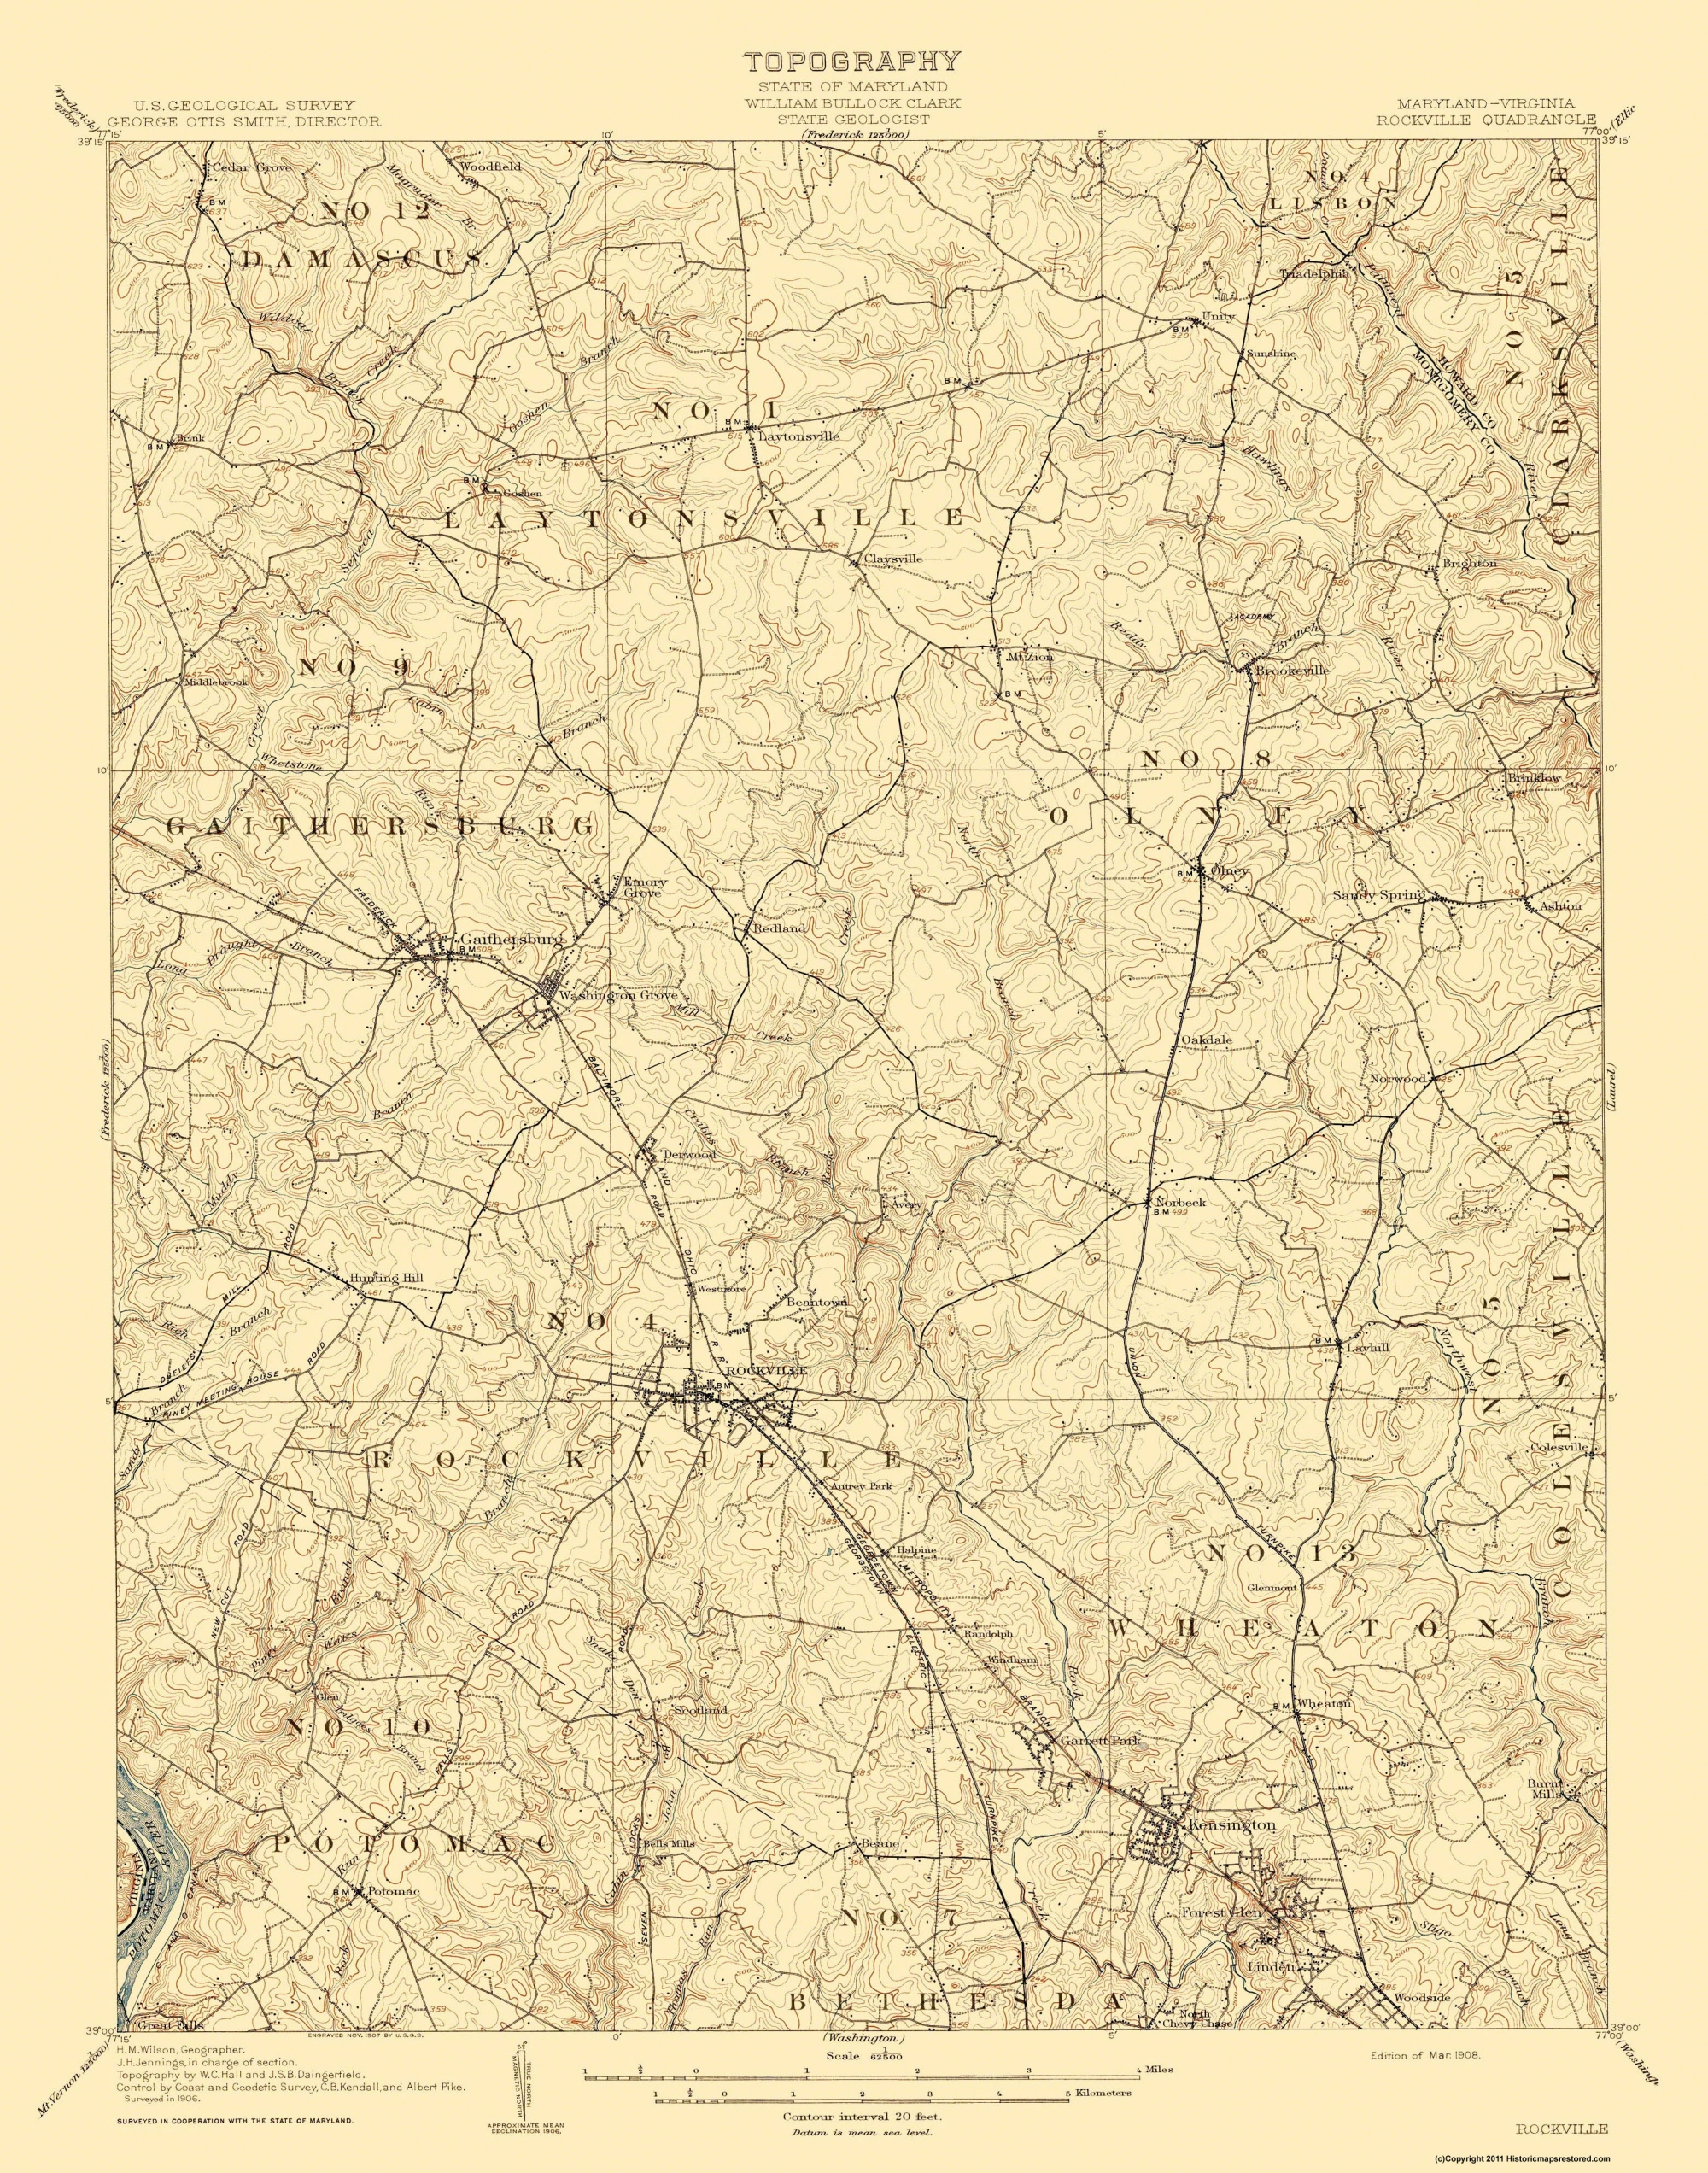 Old Topographical Map - Rockville Maryland, Virginia 1908